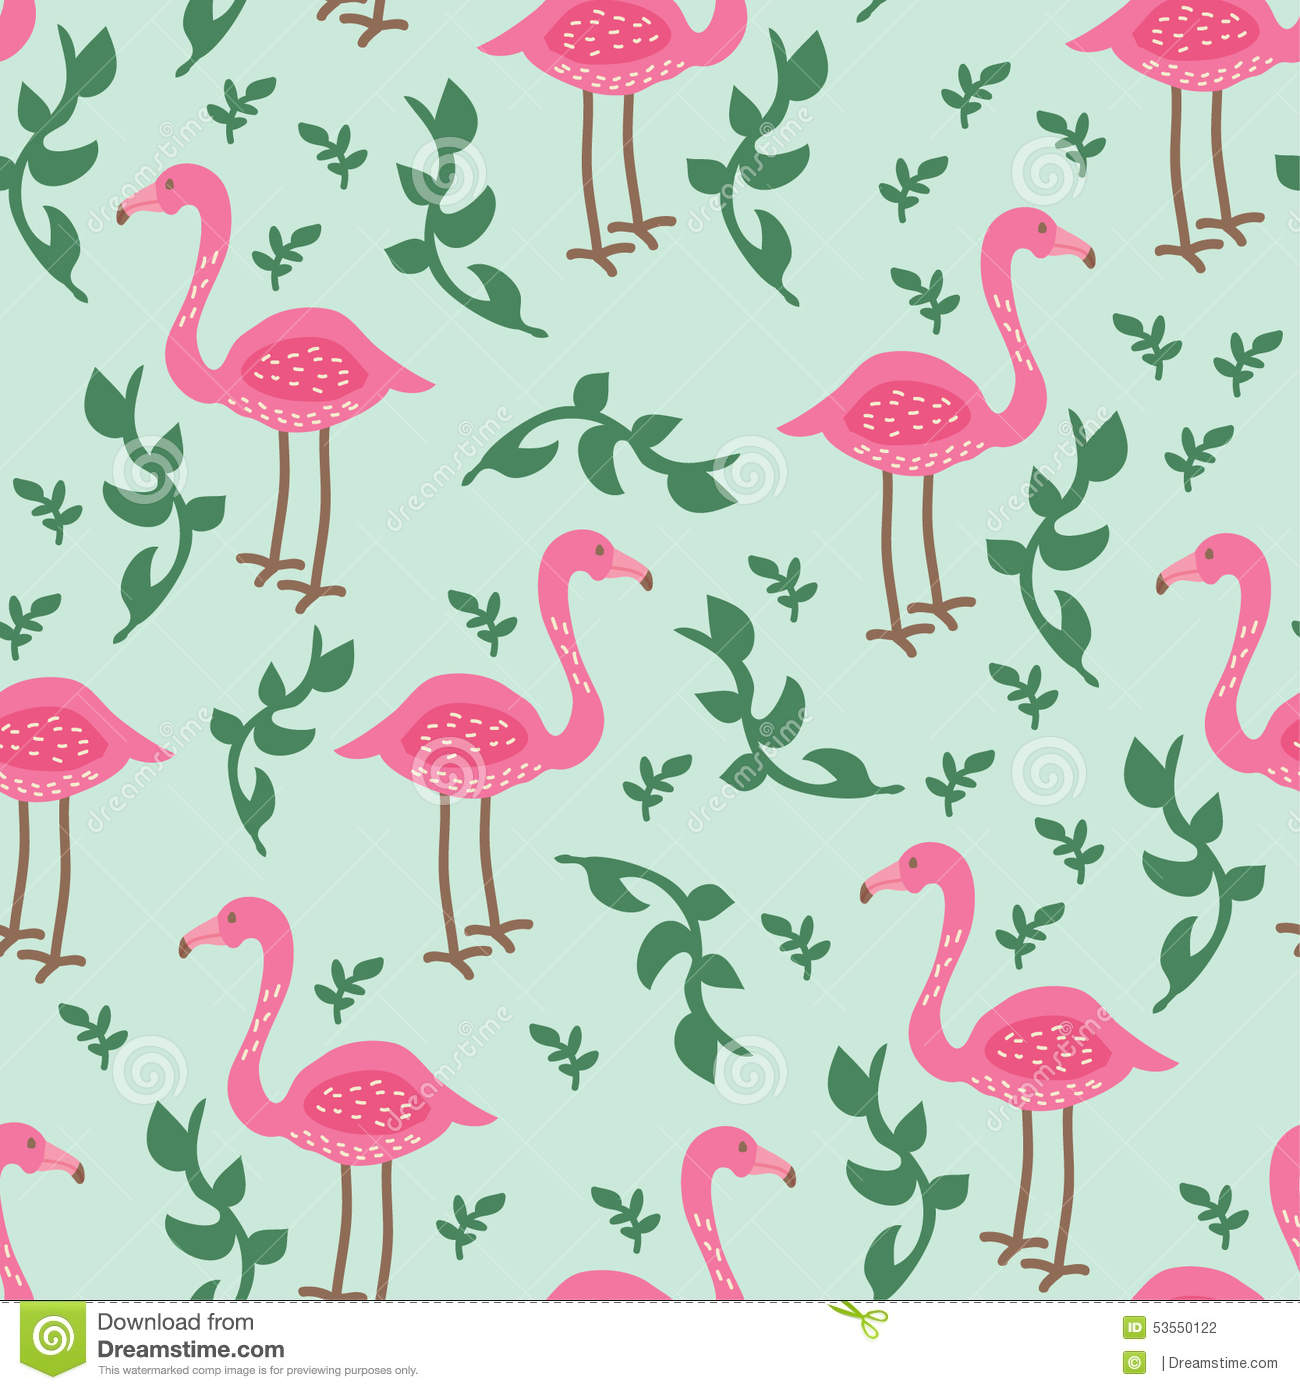 Flamingo Pattern Stock Illustration - Image: 53550122